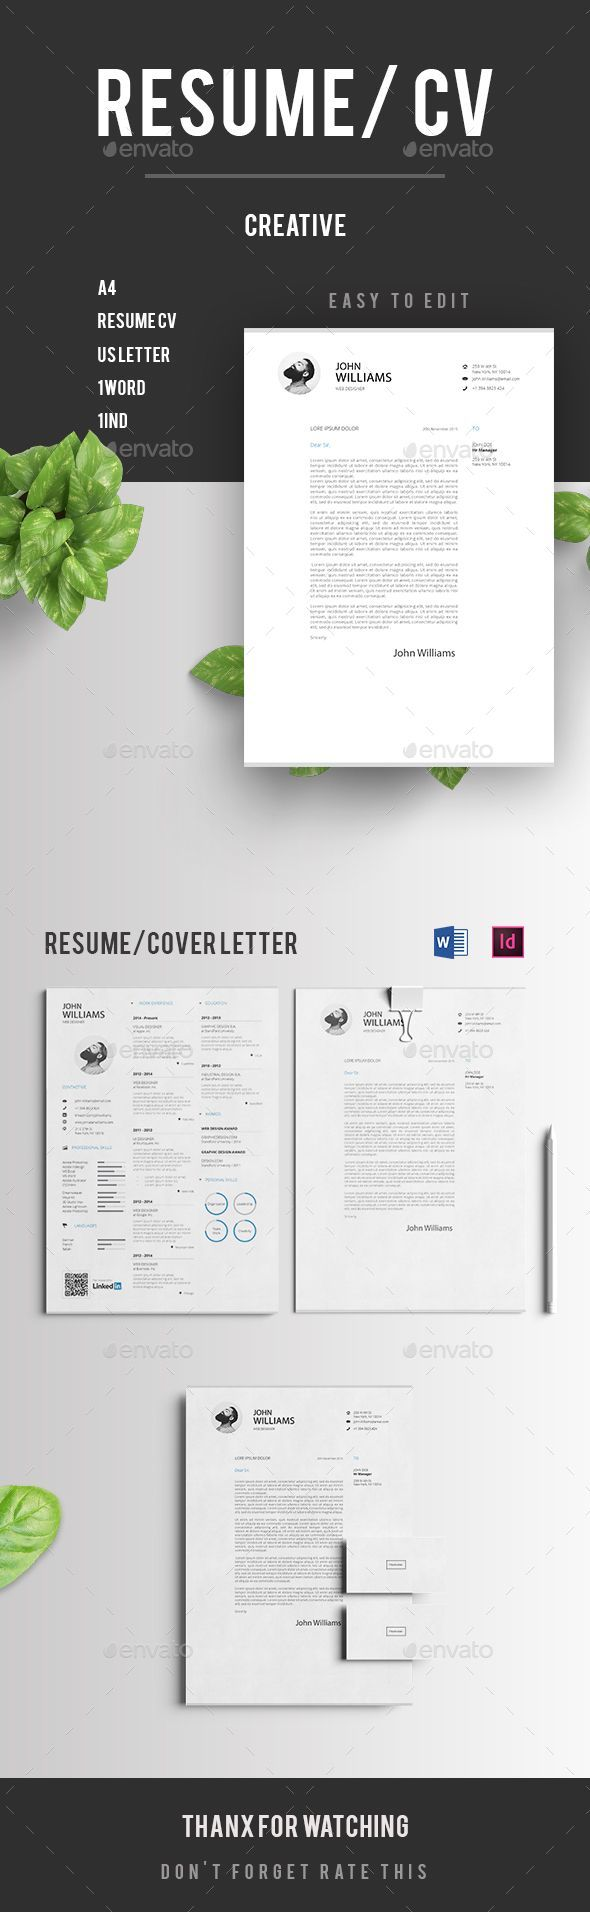 general laborer resume%0A  Resume CV   Resumes Stationery Download here  https   graphicriver